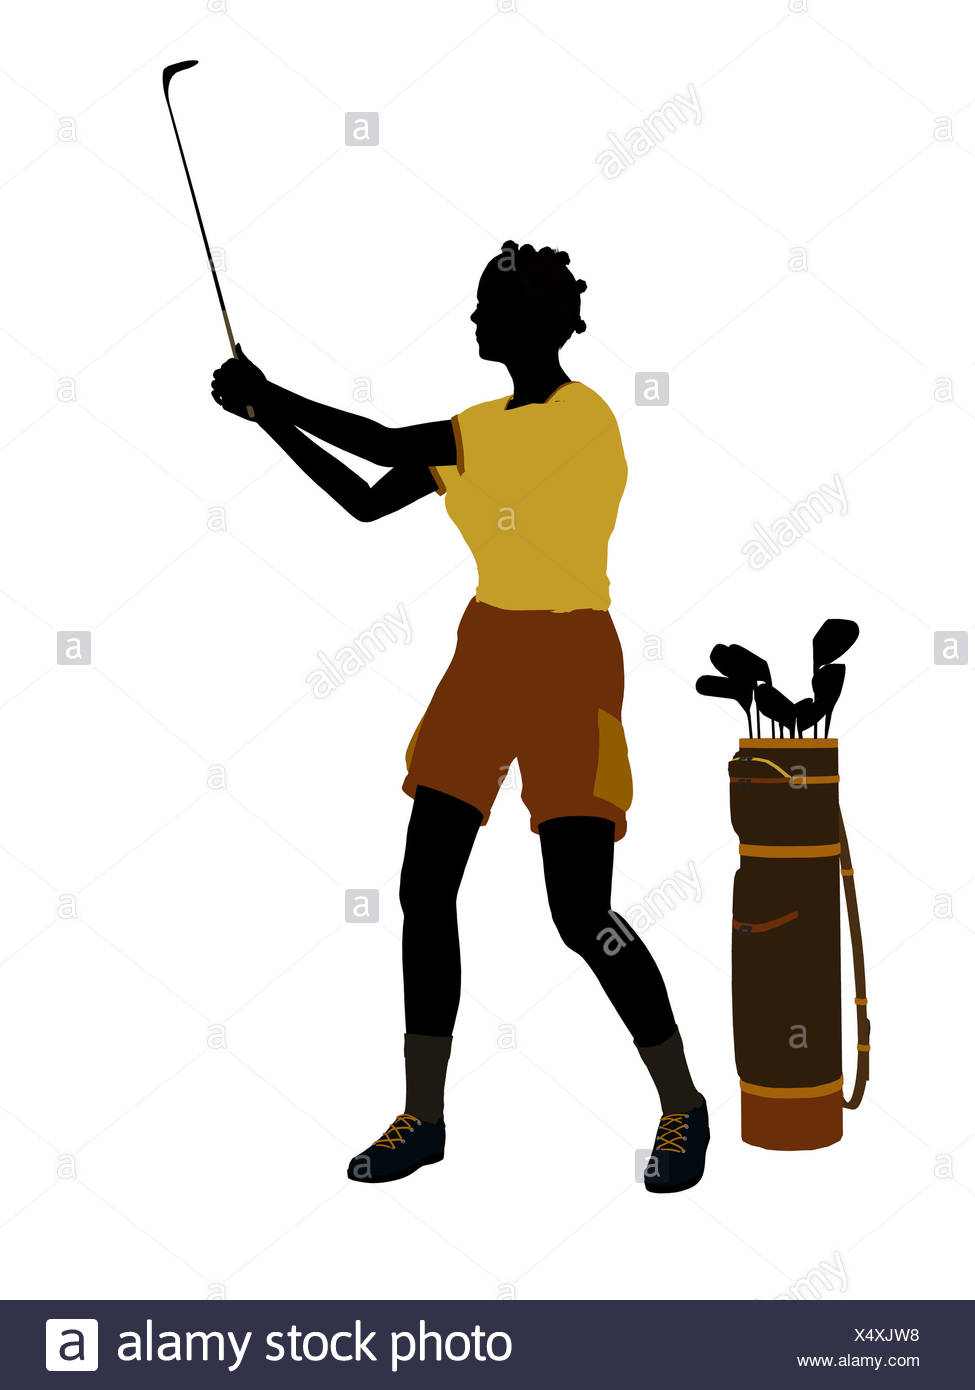 975x1390 Golf Silhouette Stock Photos Amp Golf Silhouette Stock Images